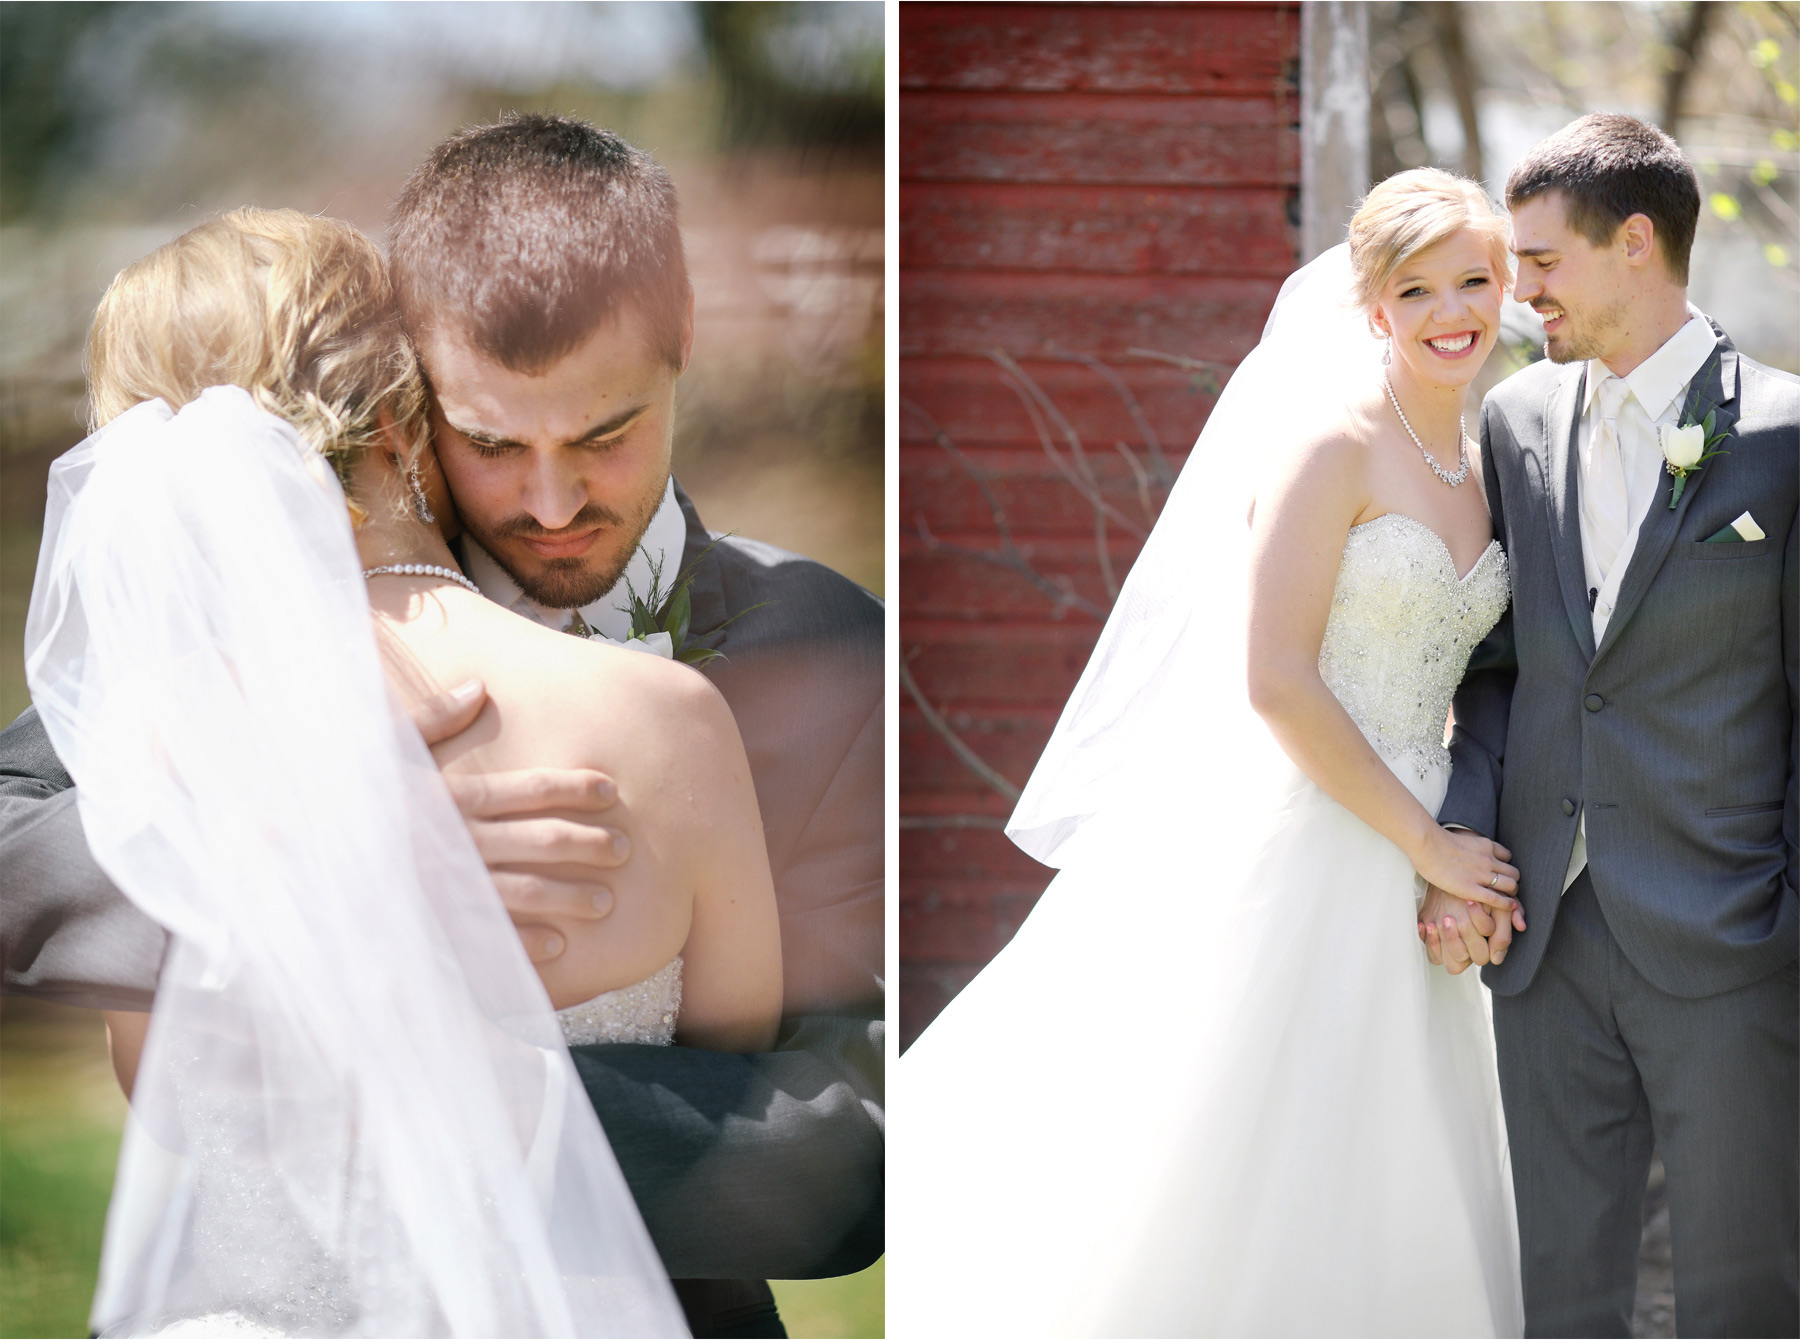 04-Minneapolis-Wedding-Photography-by-Vick-Photography-First-Look-Kasie-and-Joshua.jpg